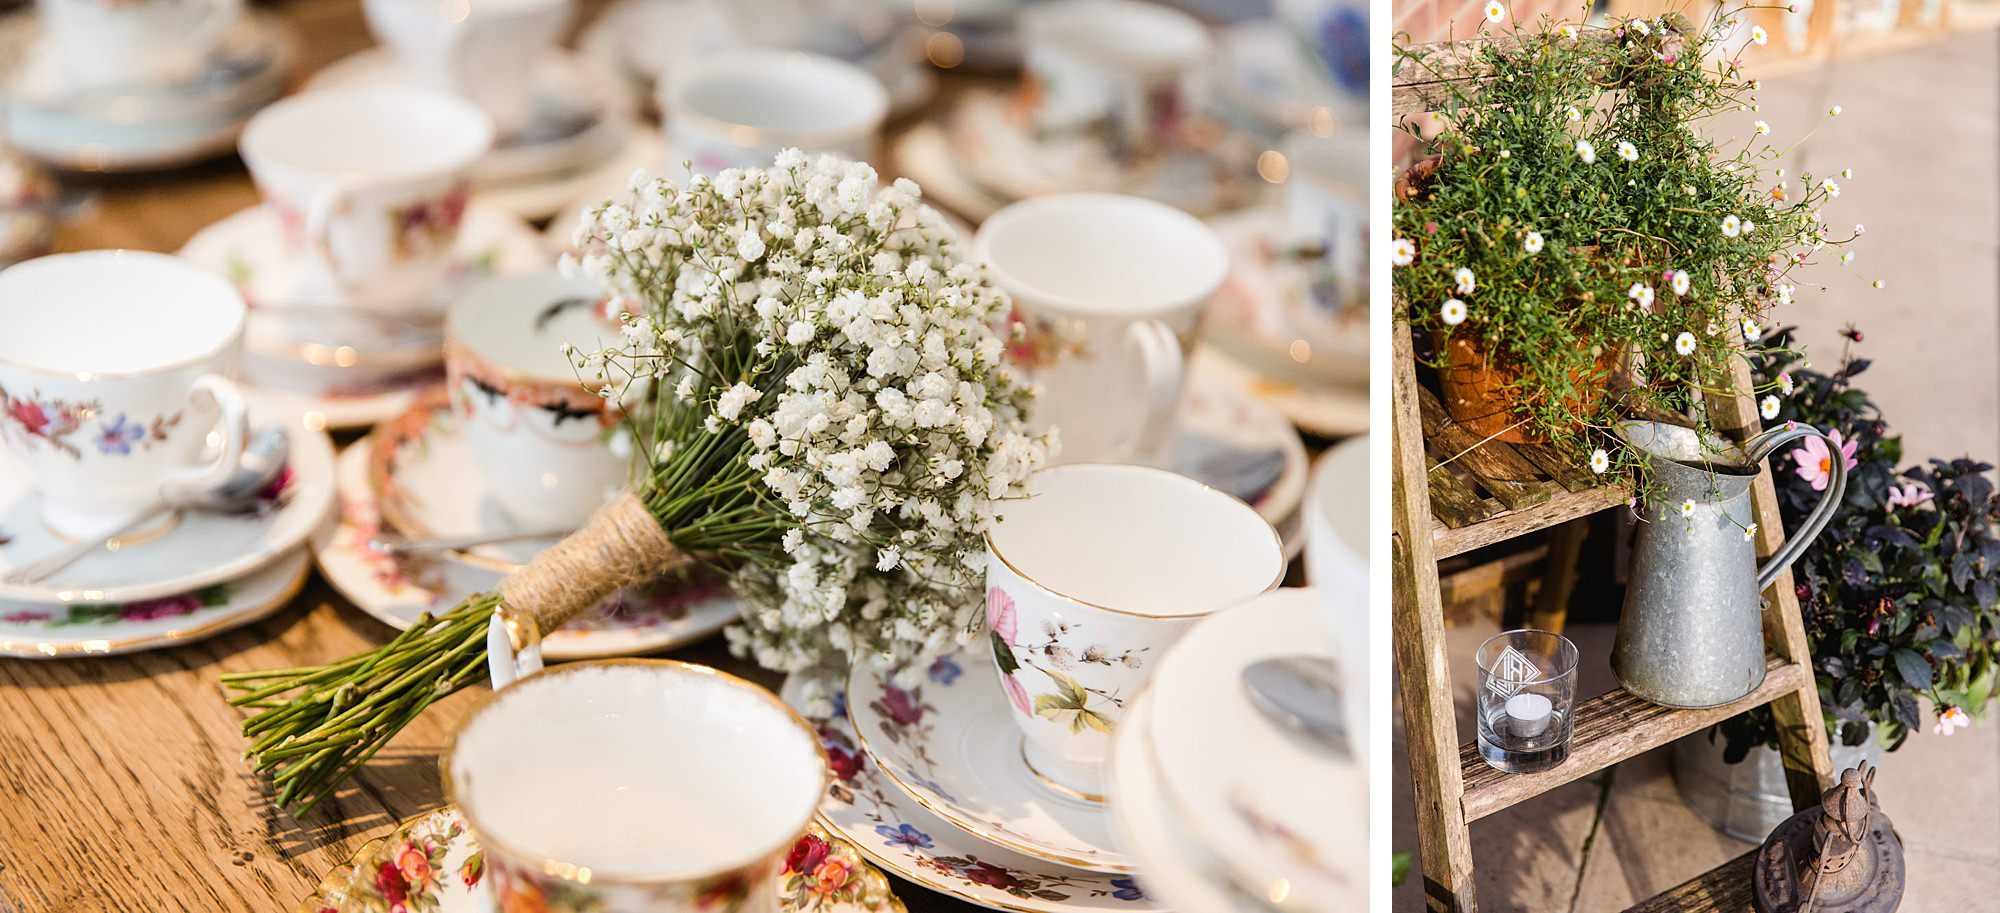 Writtle university college wedding vintage teacups and decorations